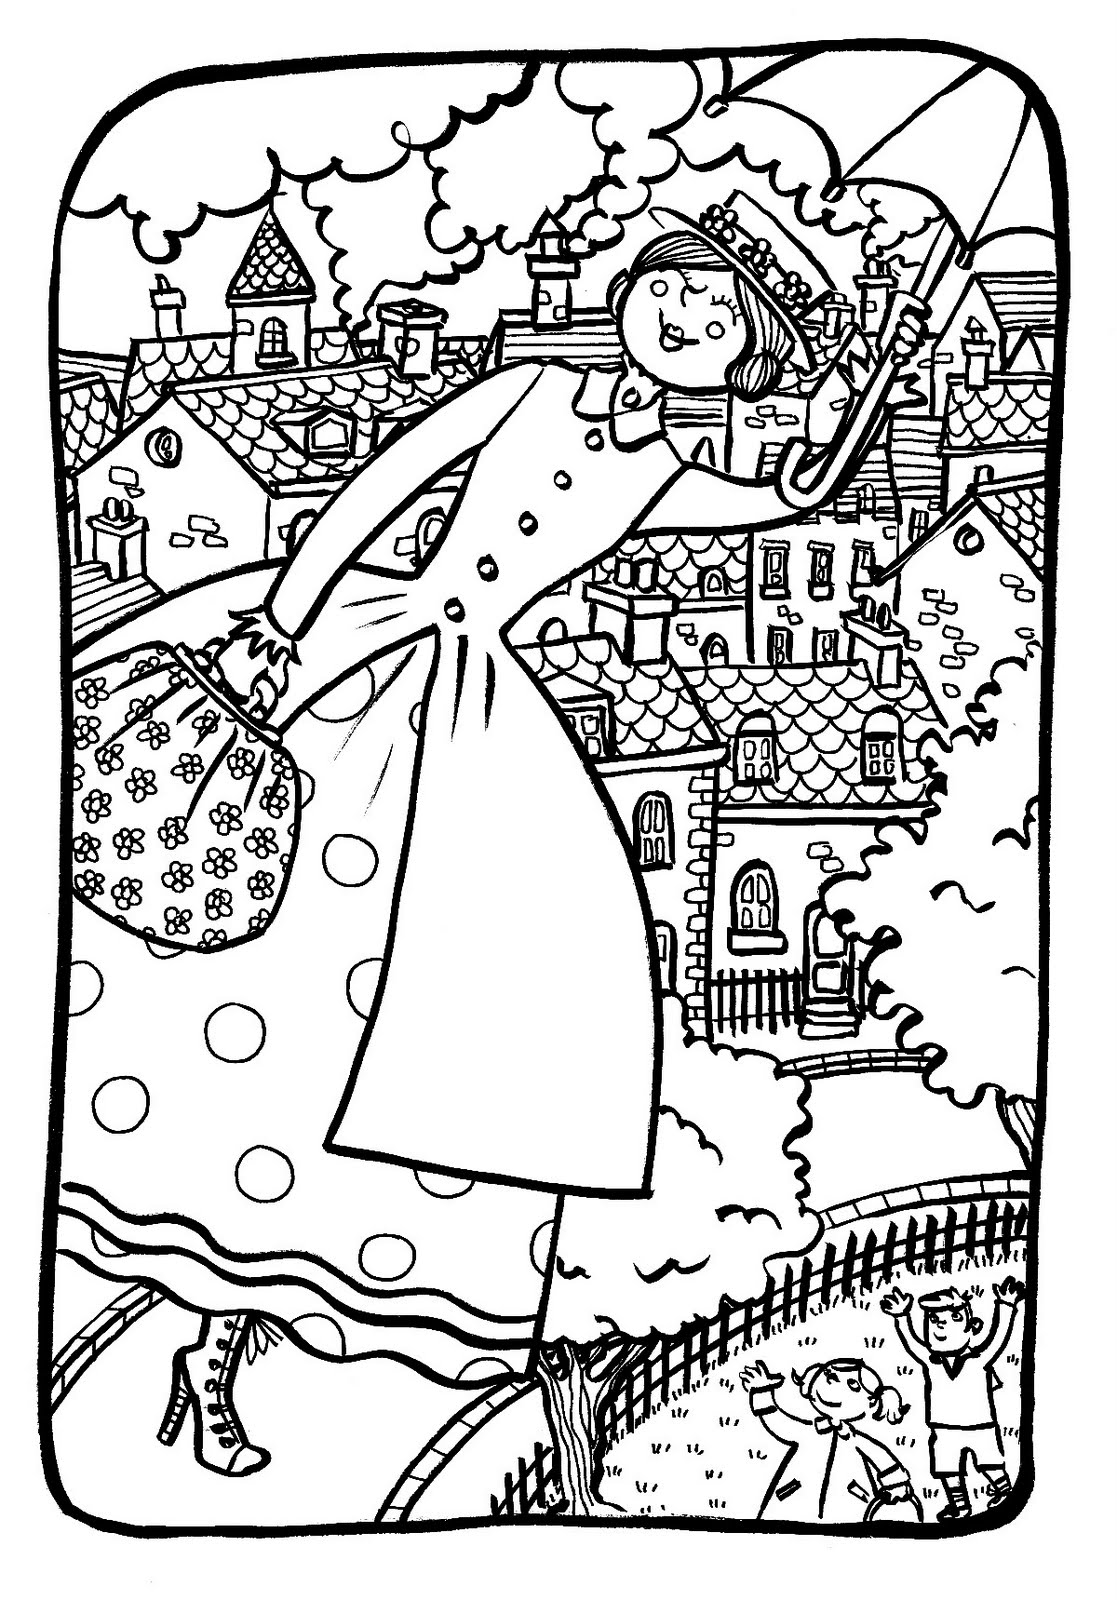 mary-poppins-coloring-page-0021-q1